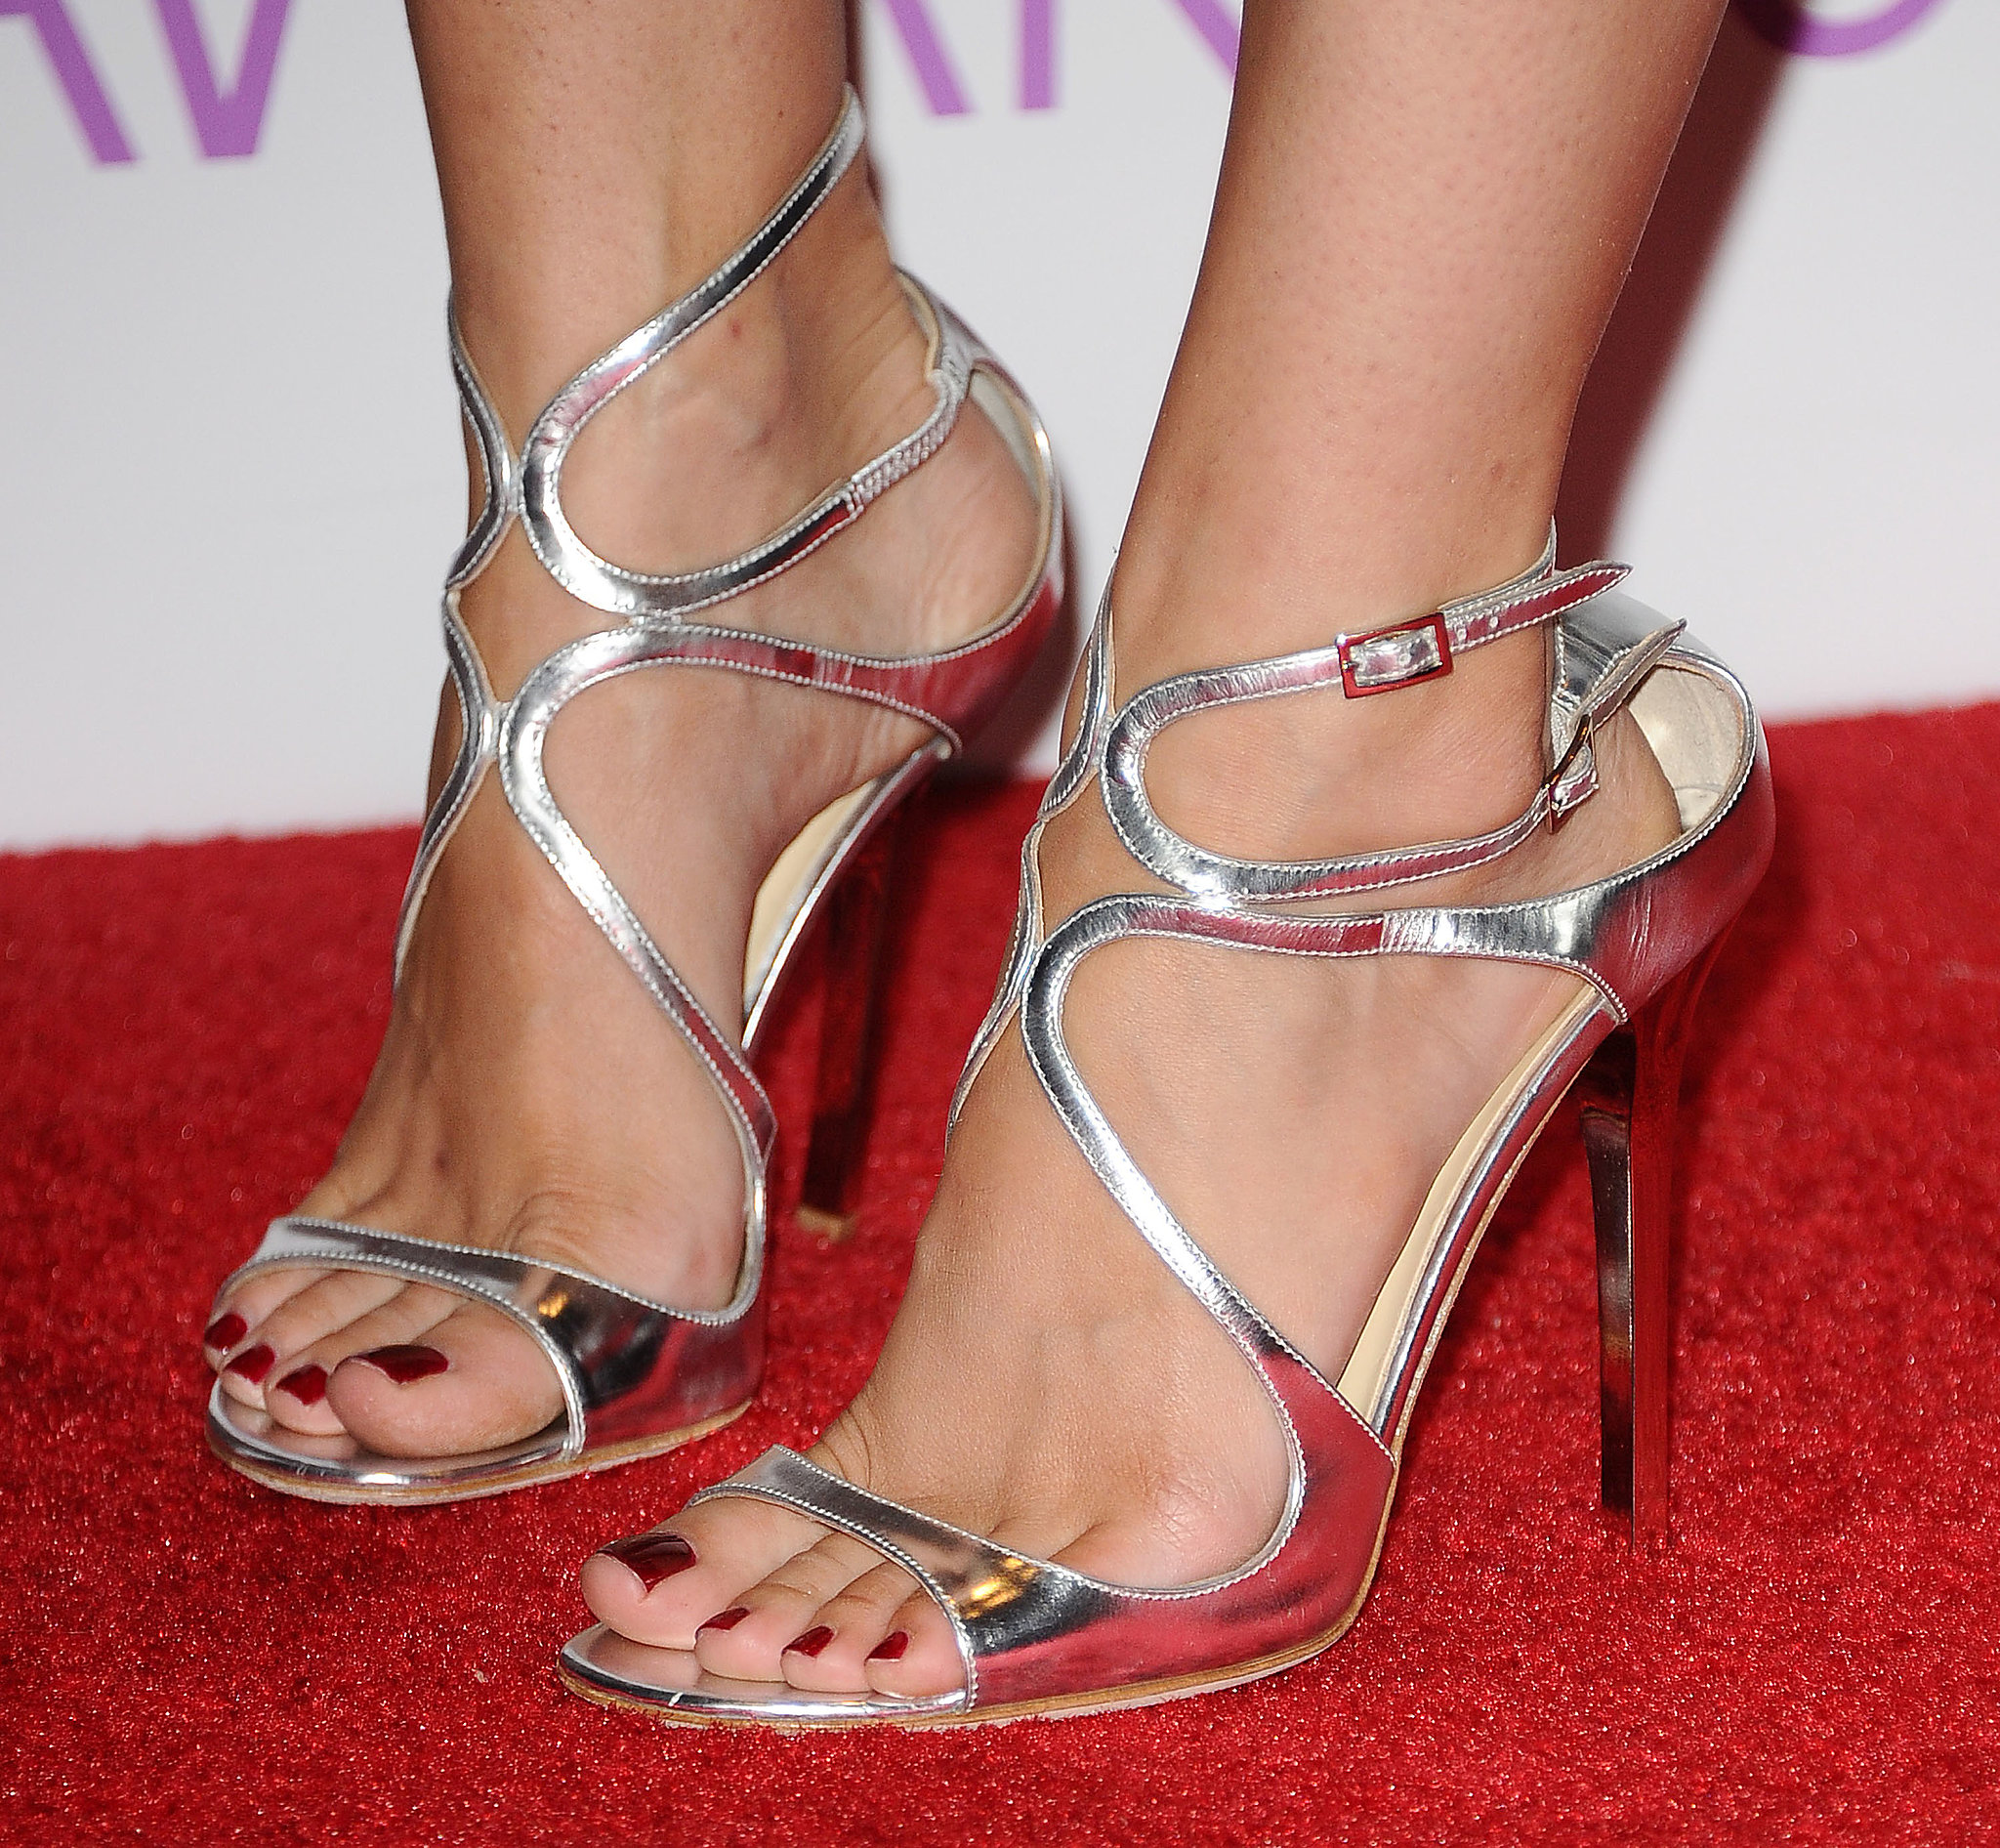 Beth Behrs Feet Beth behrs feet people's